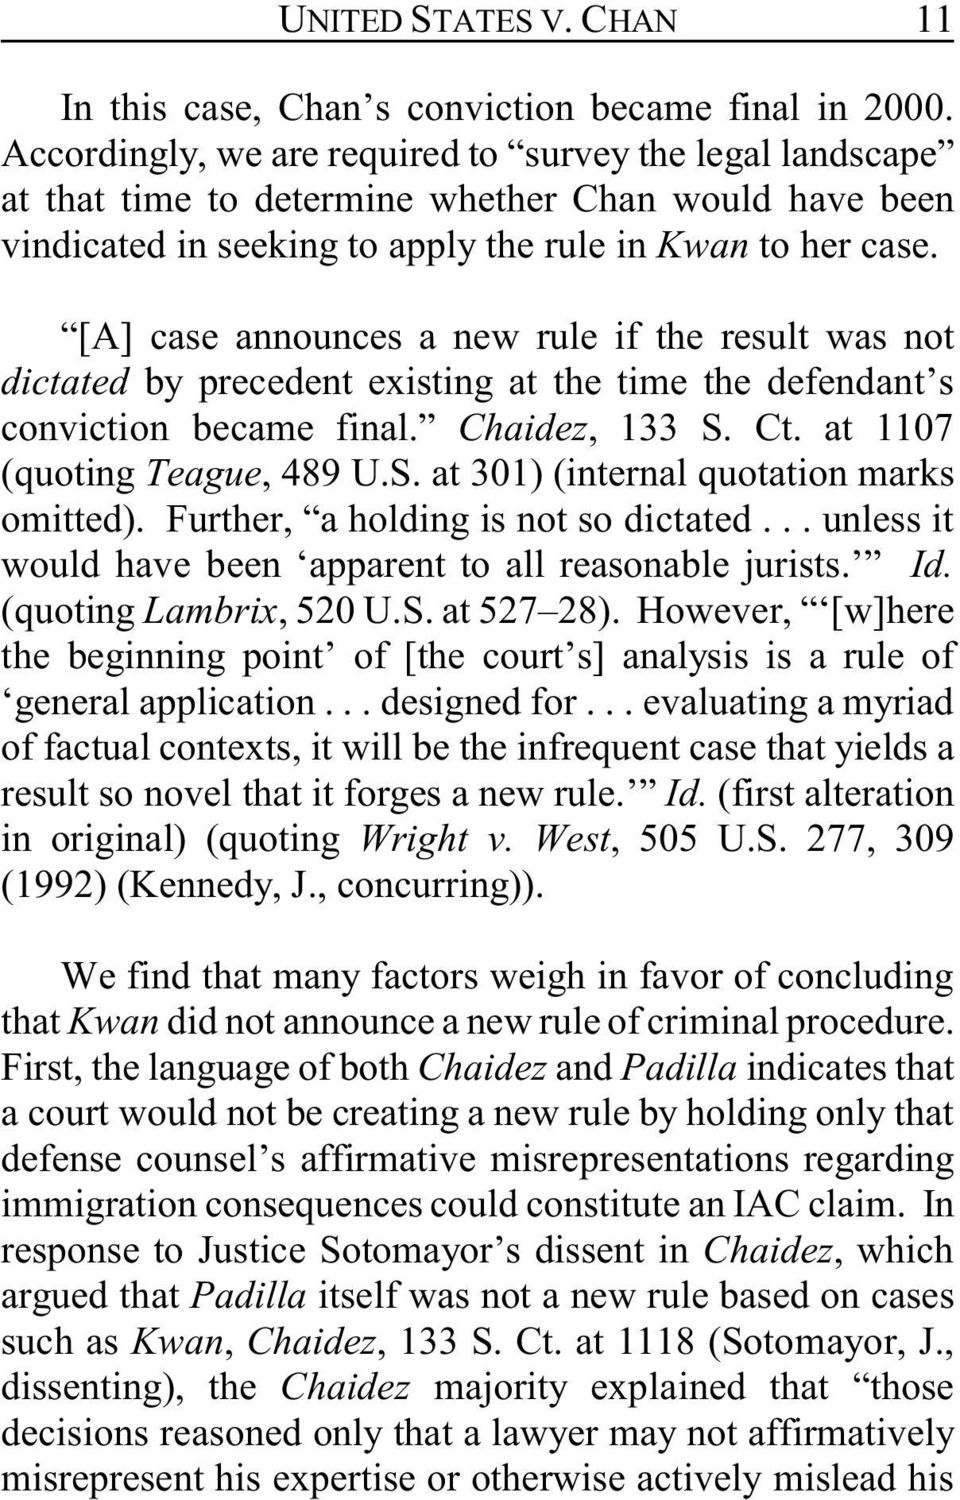 [A] case announces a new rule if the result was not dictated by precedent existing at the time the defendant s conviction became final. Chaidez, 133 S. Ct. at 1107 (quoting Teague, 489 U.S. at 301) (internal quotation marks omitted).